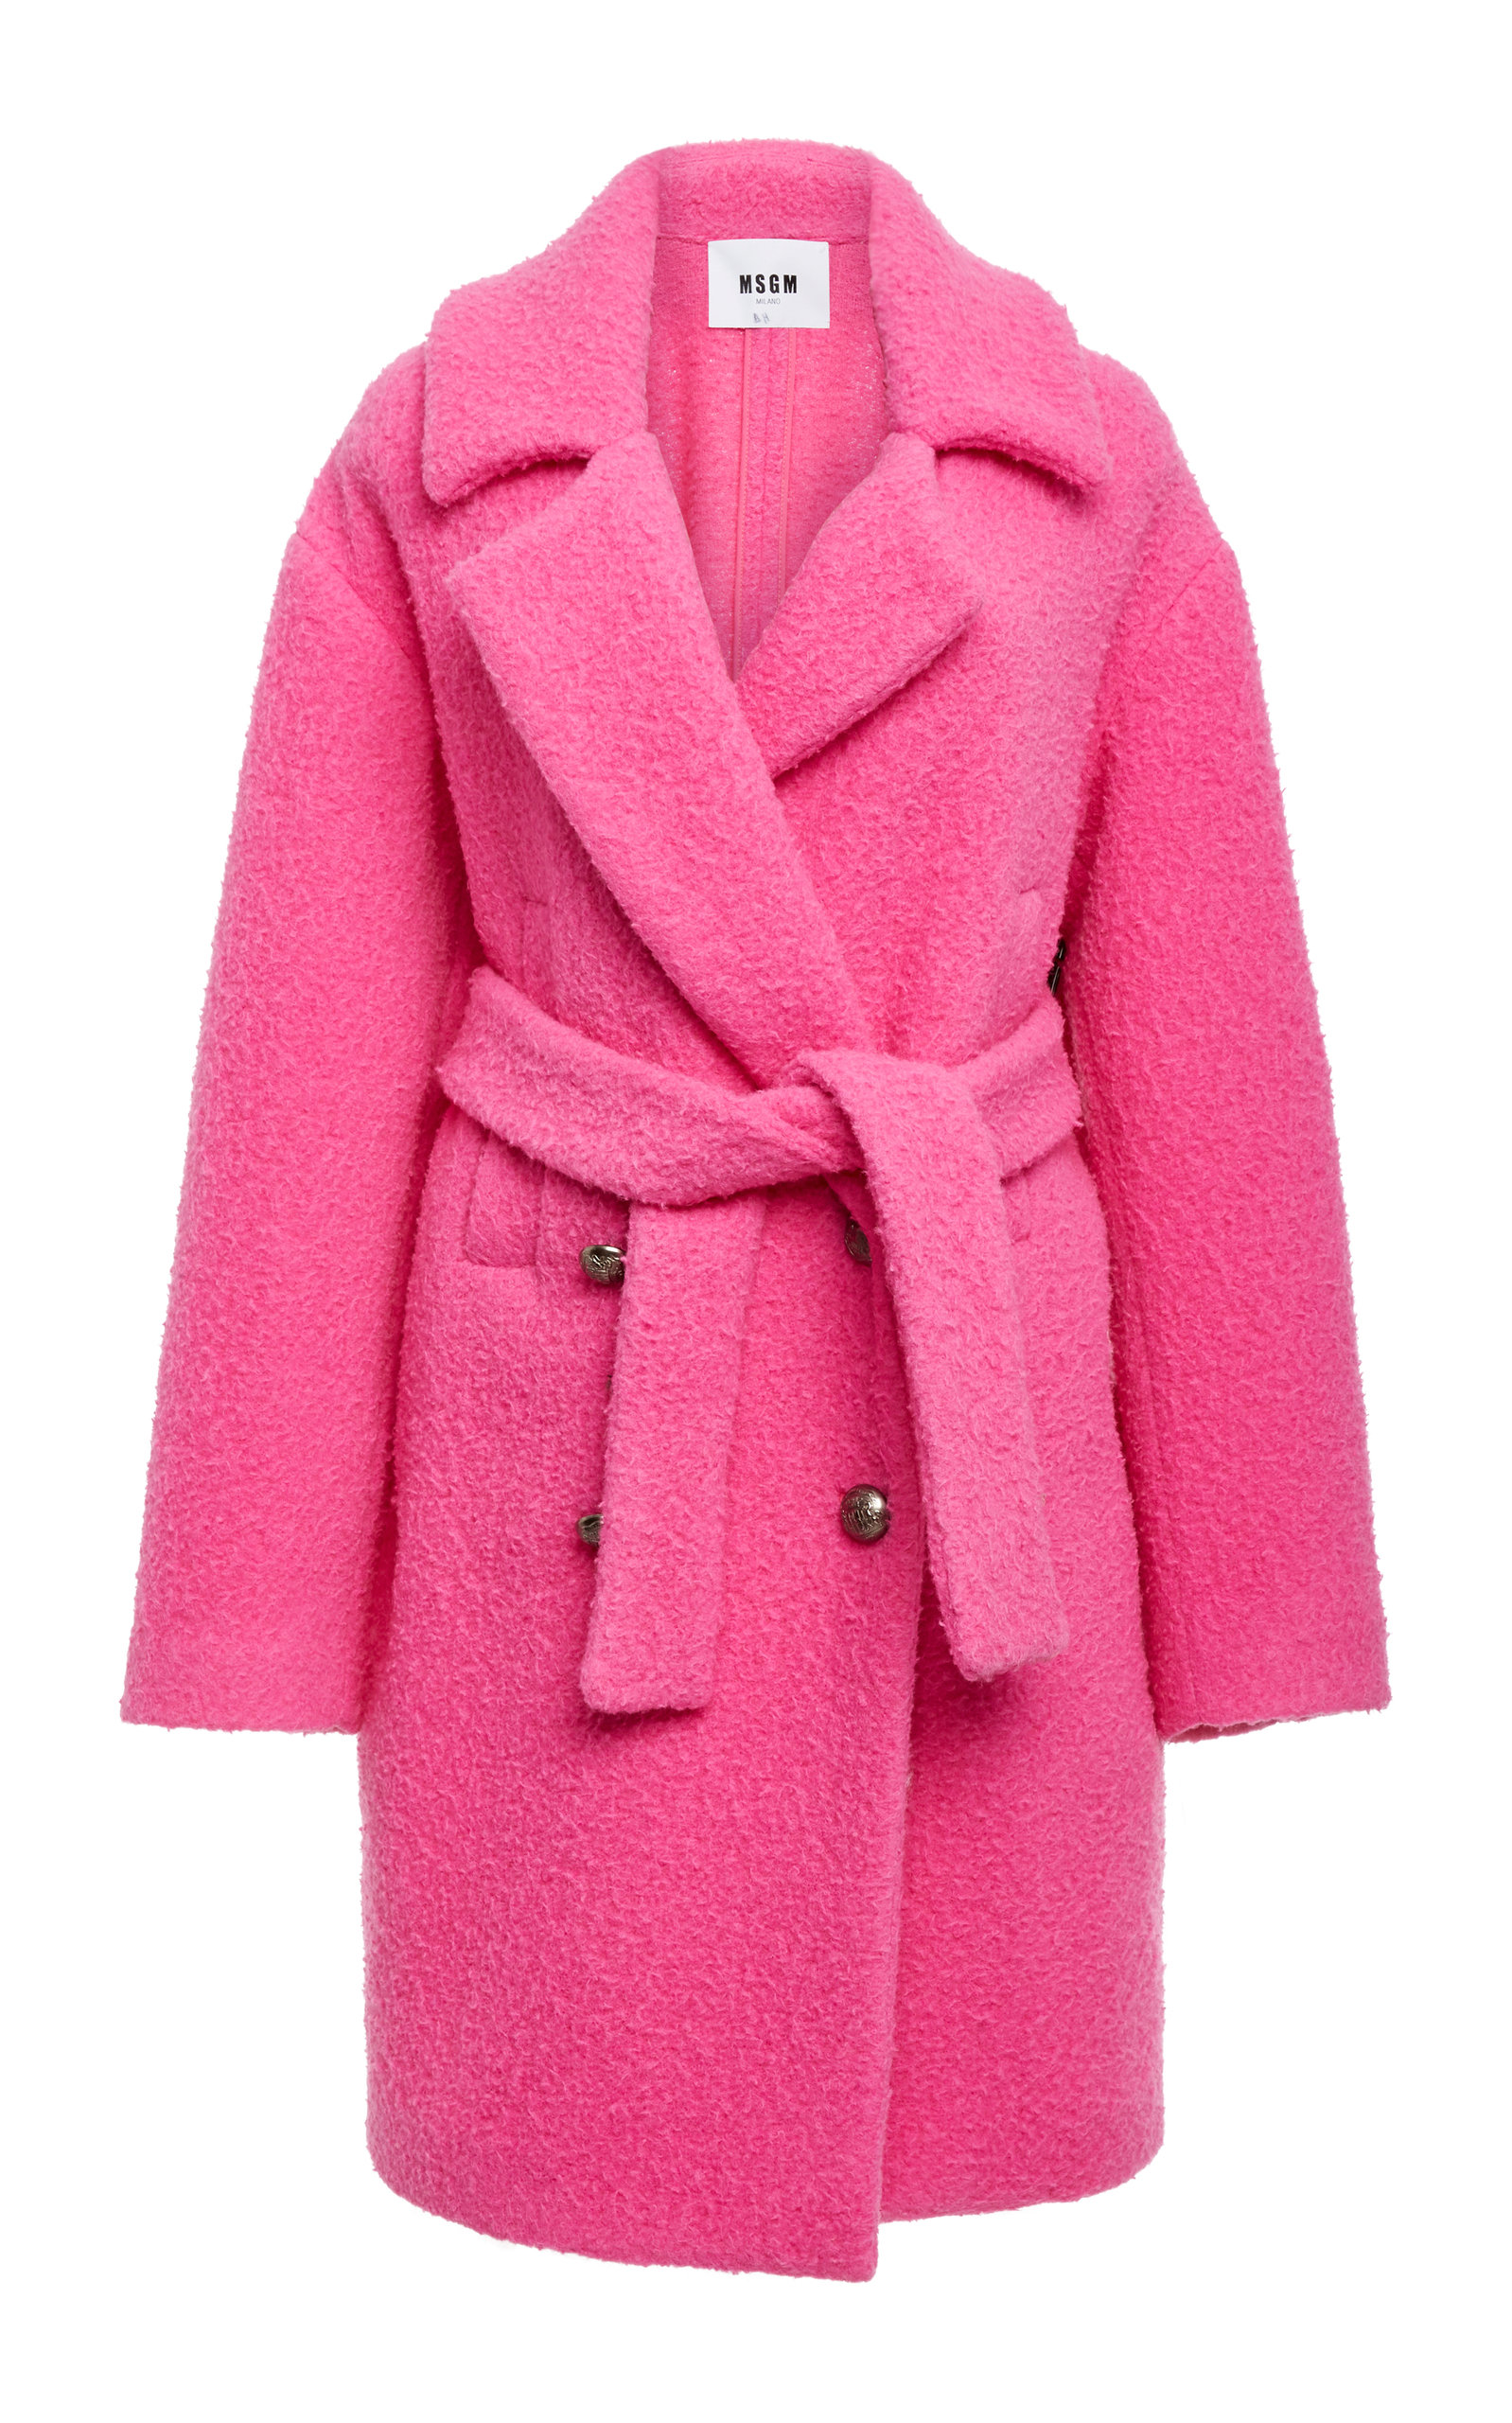 Oversized Double-Breasted Wool-Blend Coat in Pink